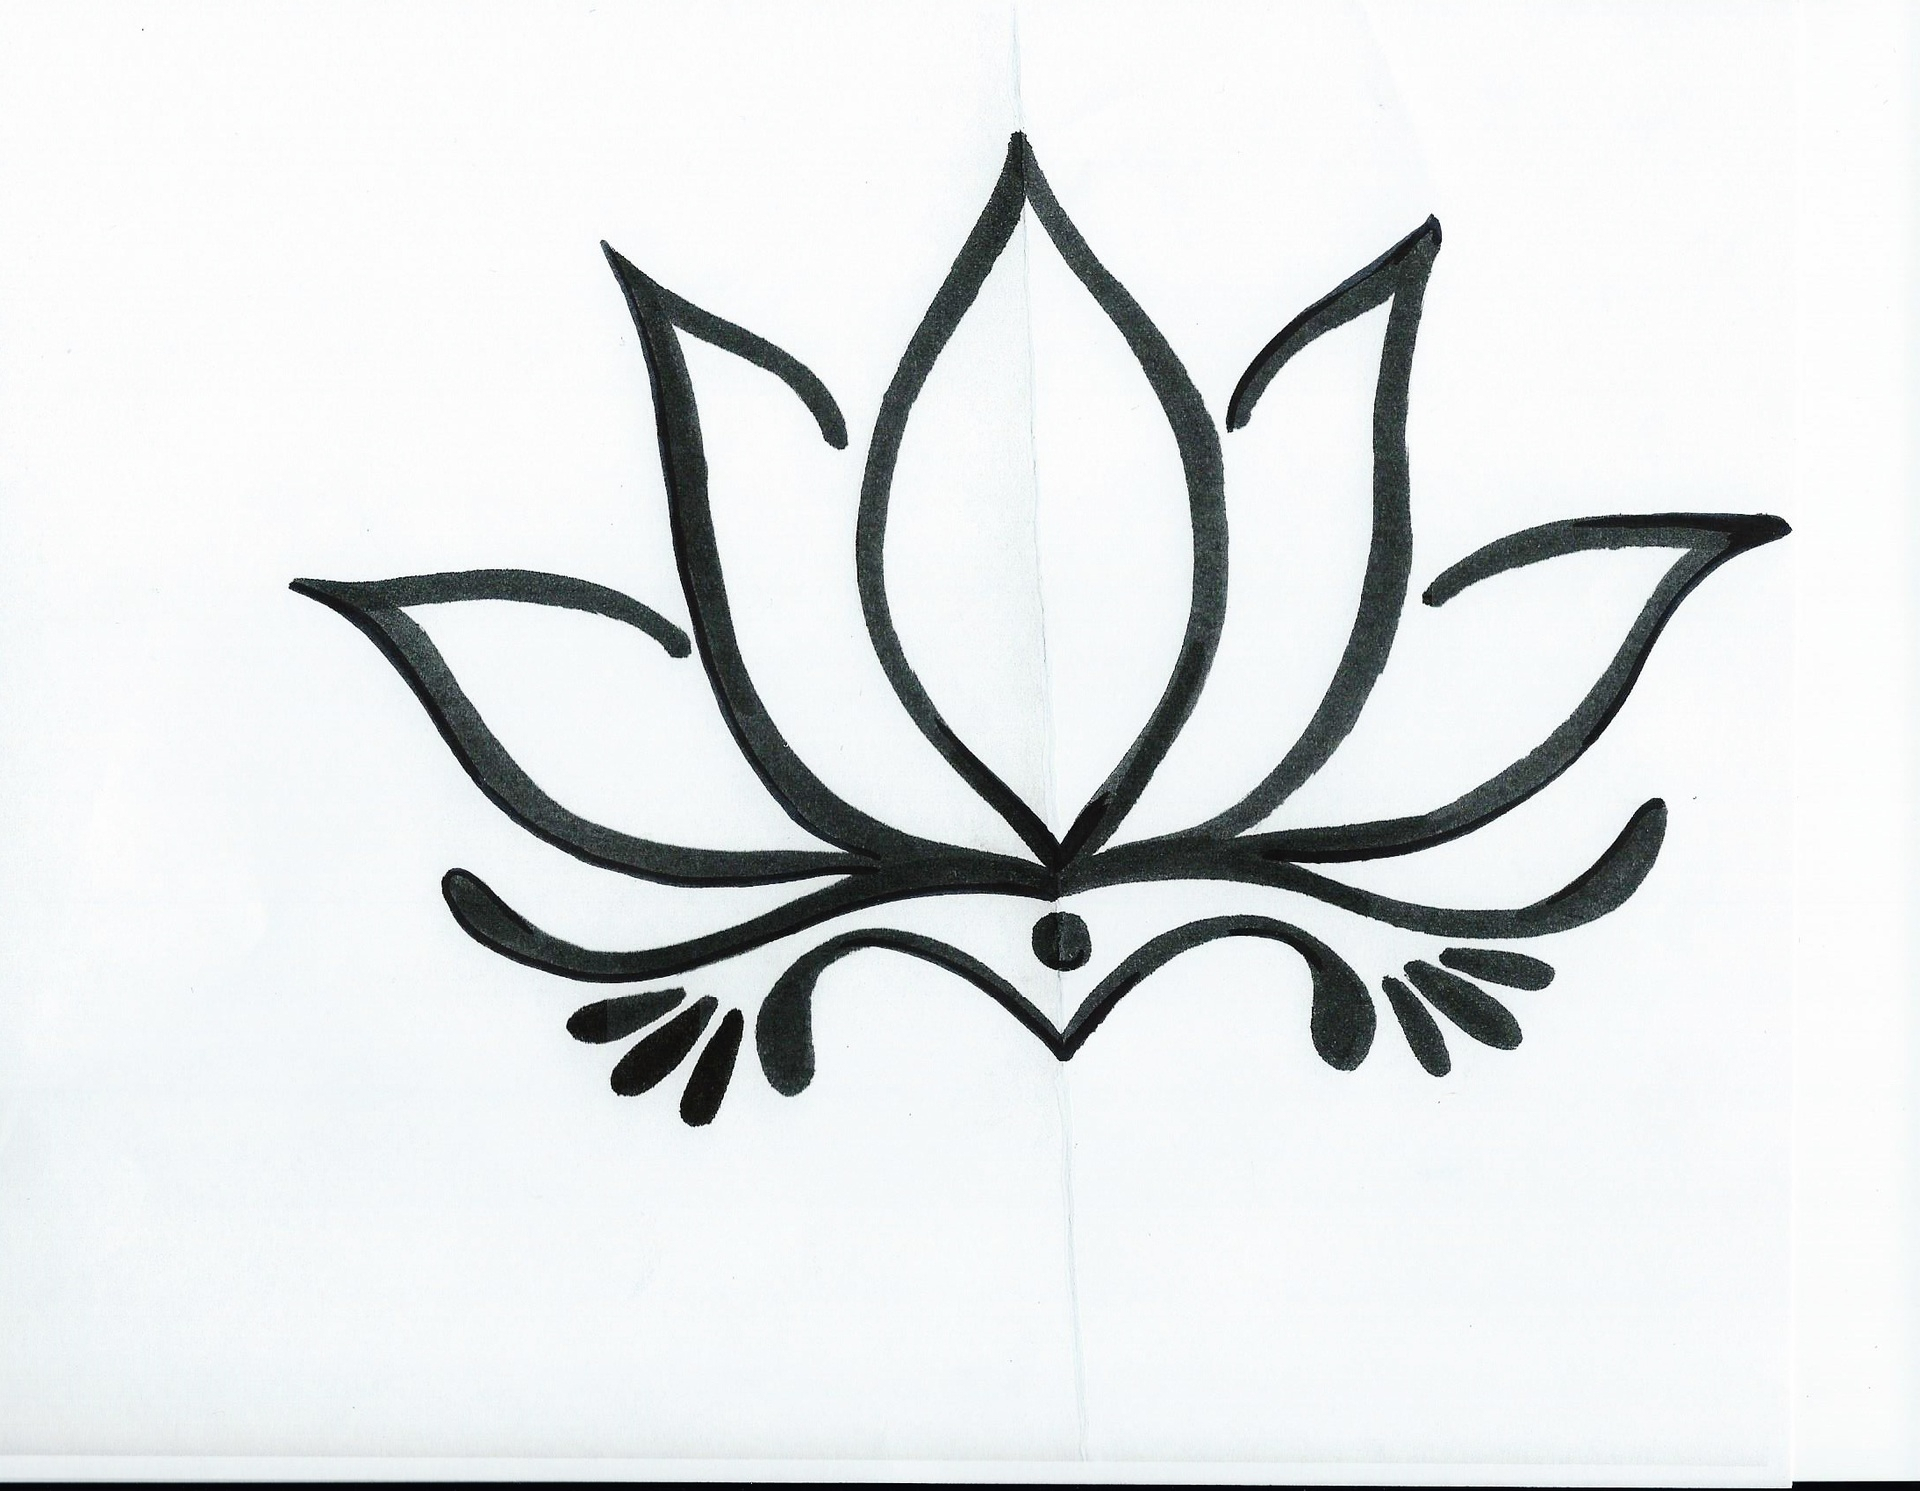 White Lotus Flower Drawing At Getdrawings Free For Personal